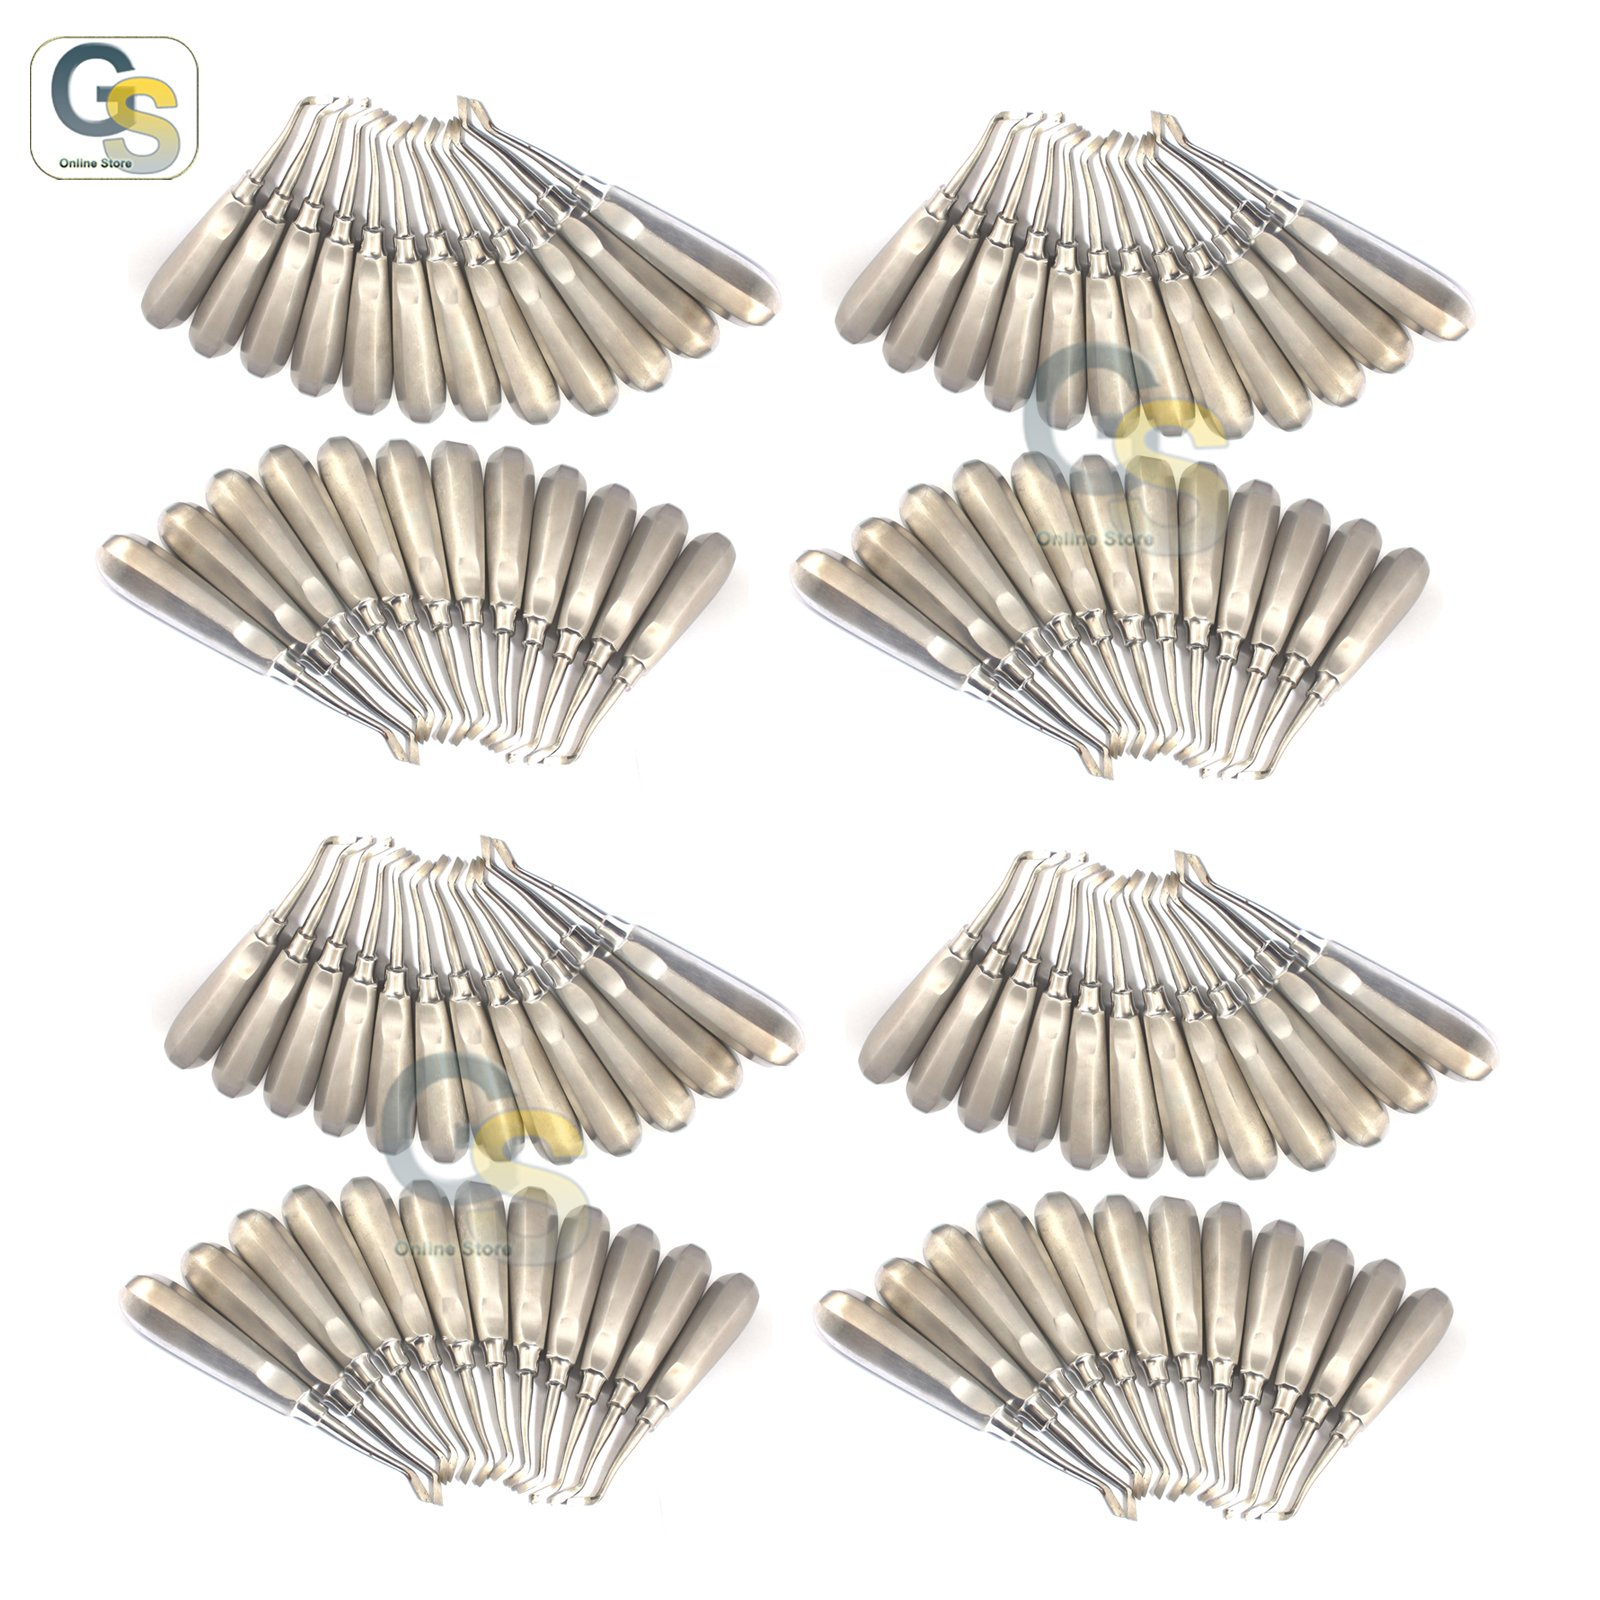 G.S A BIG SET OF 100 PCS NEW ROOT ELEVATOR 190 DENTAL INSTRUMENTS BEST QUALITY